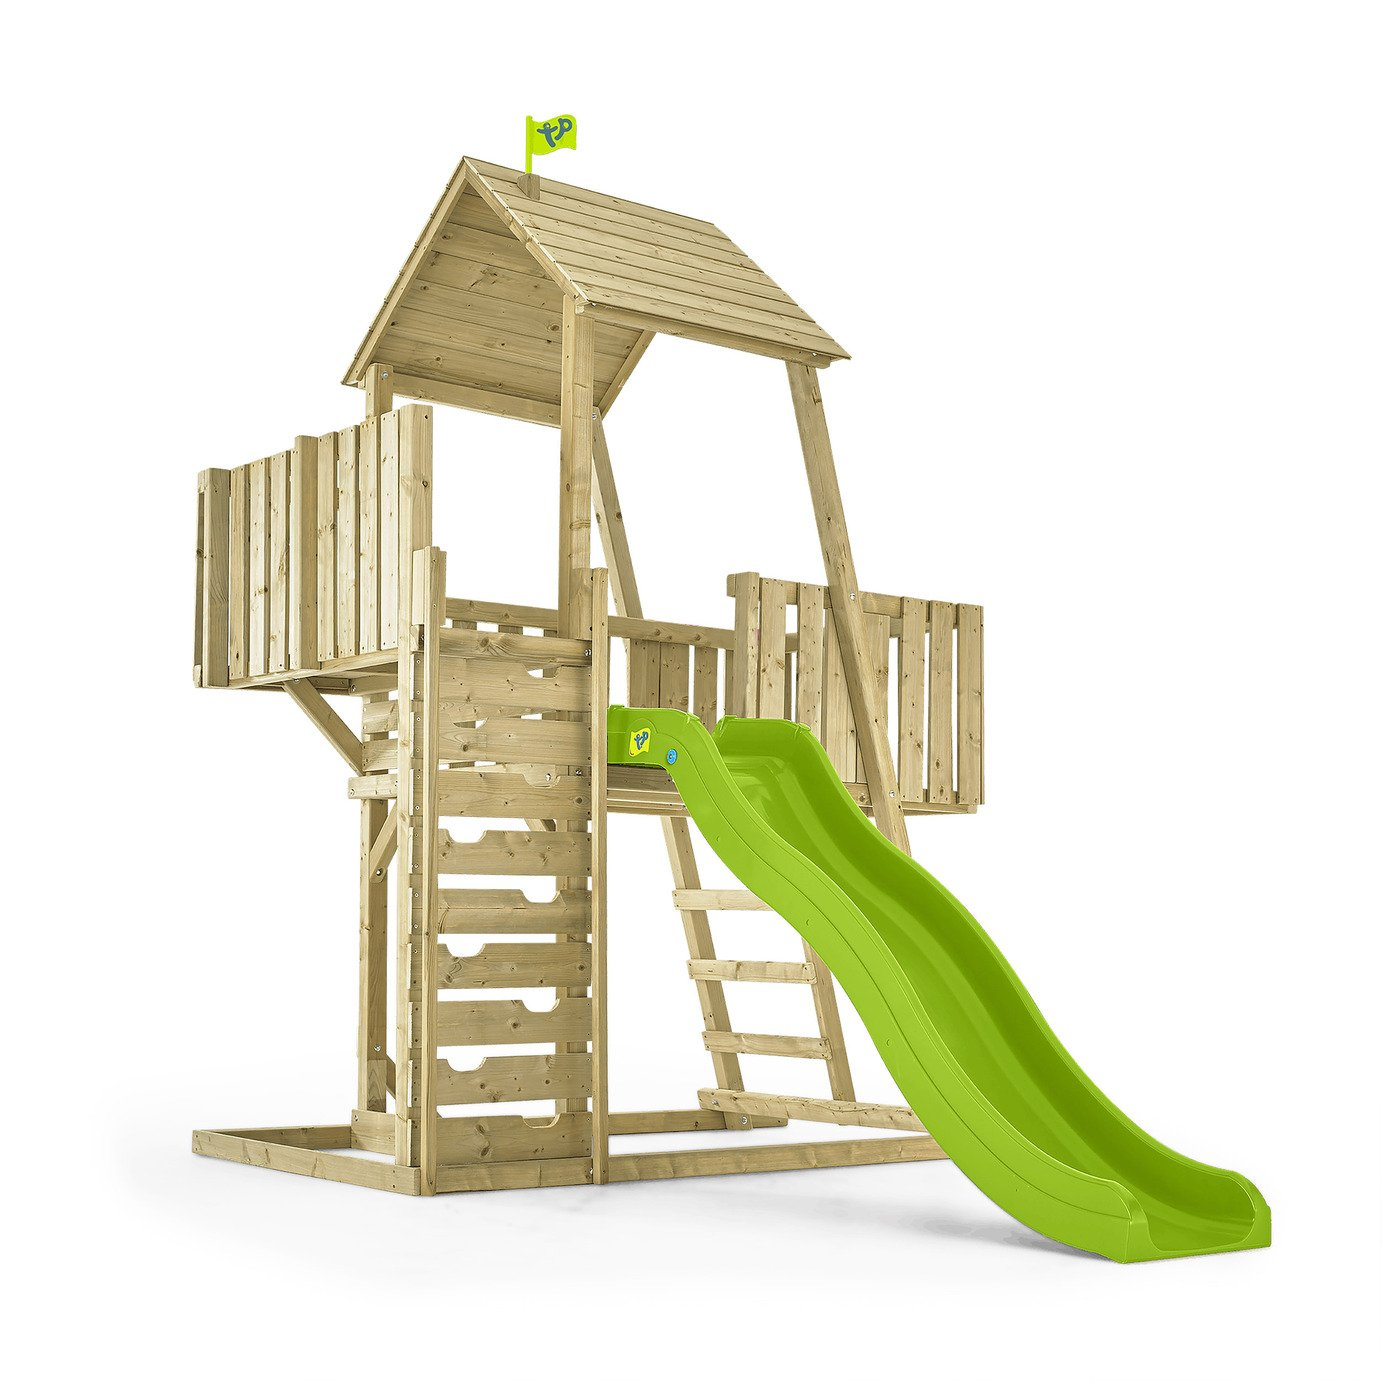 tp toys kingswood2 tower set with crazywavy slide.